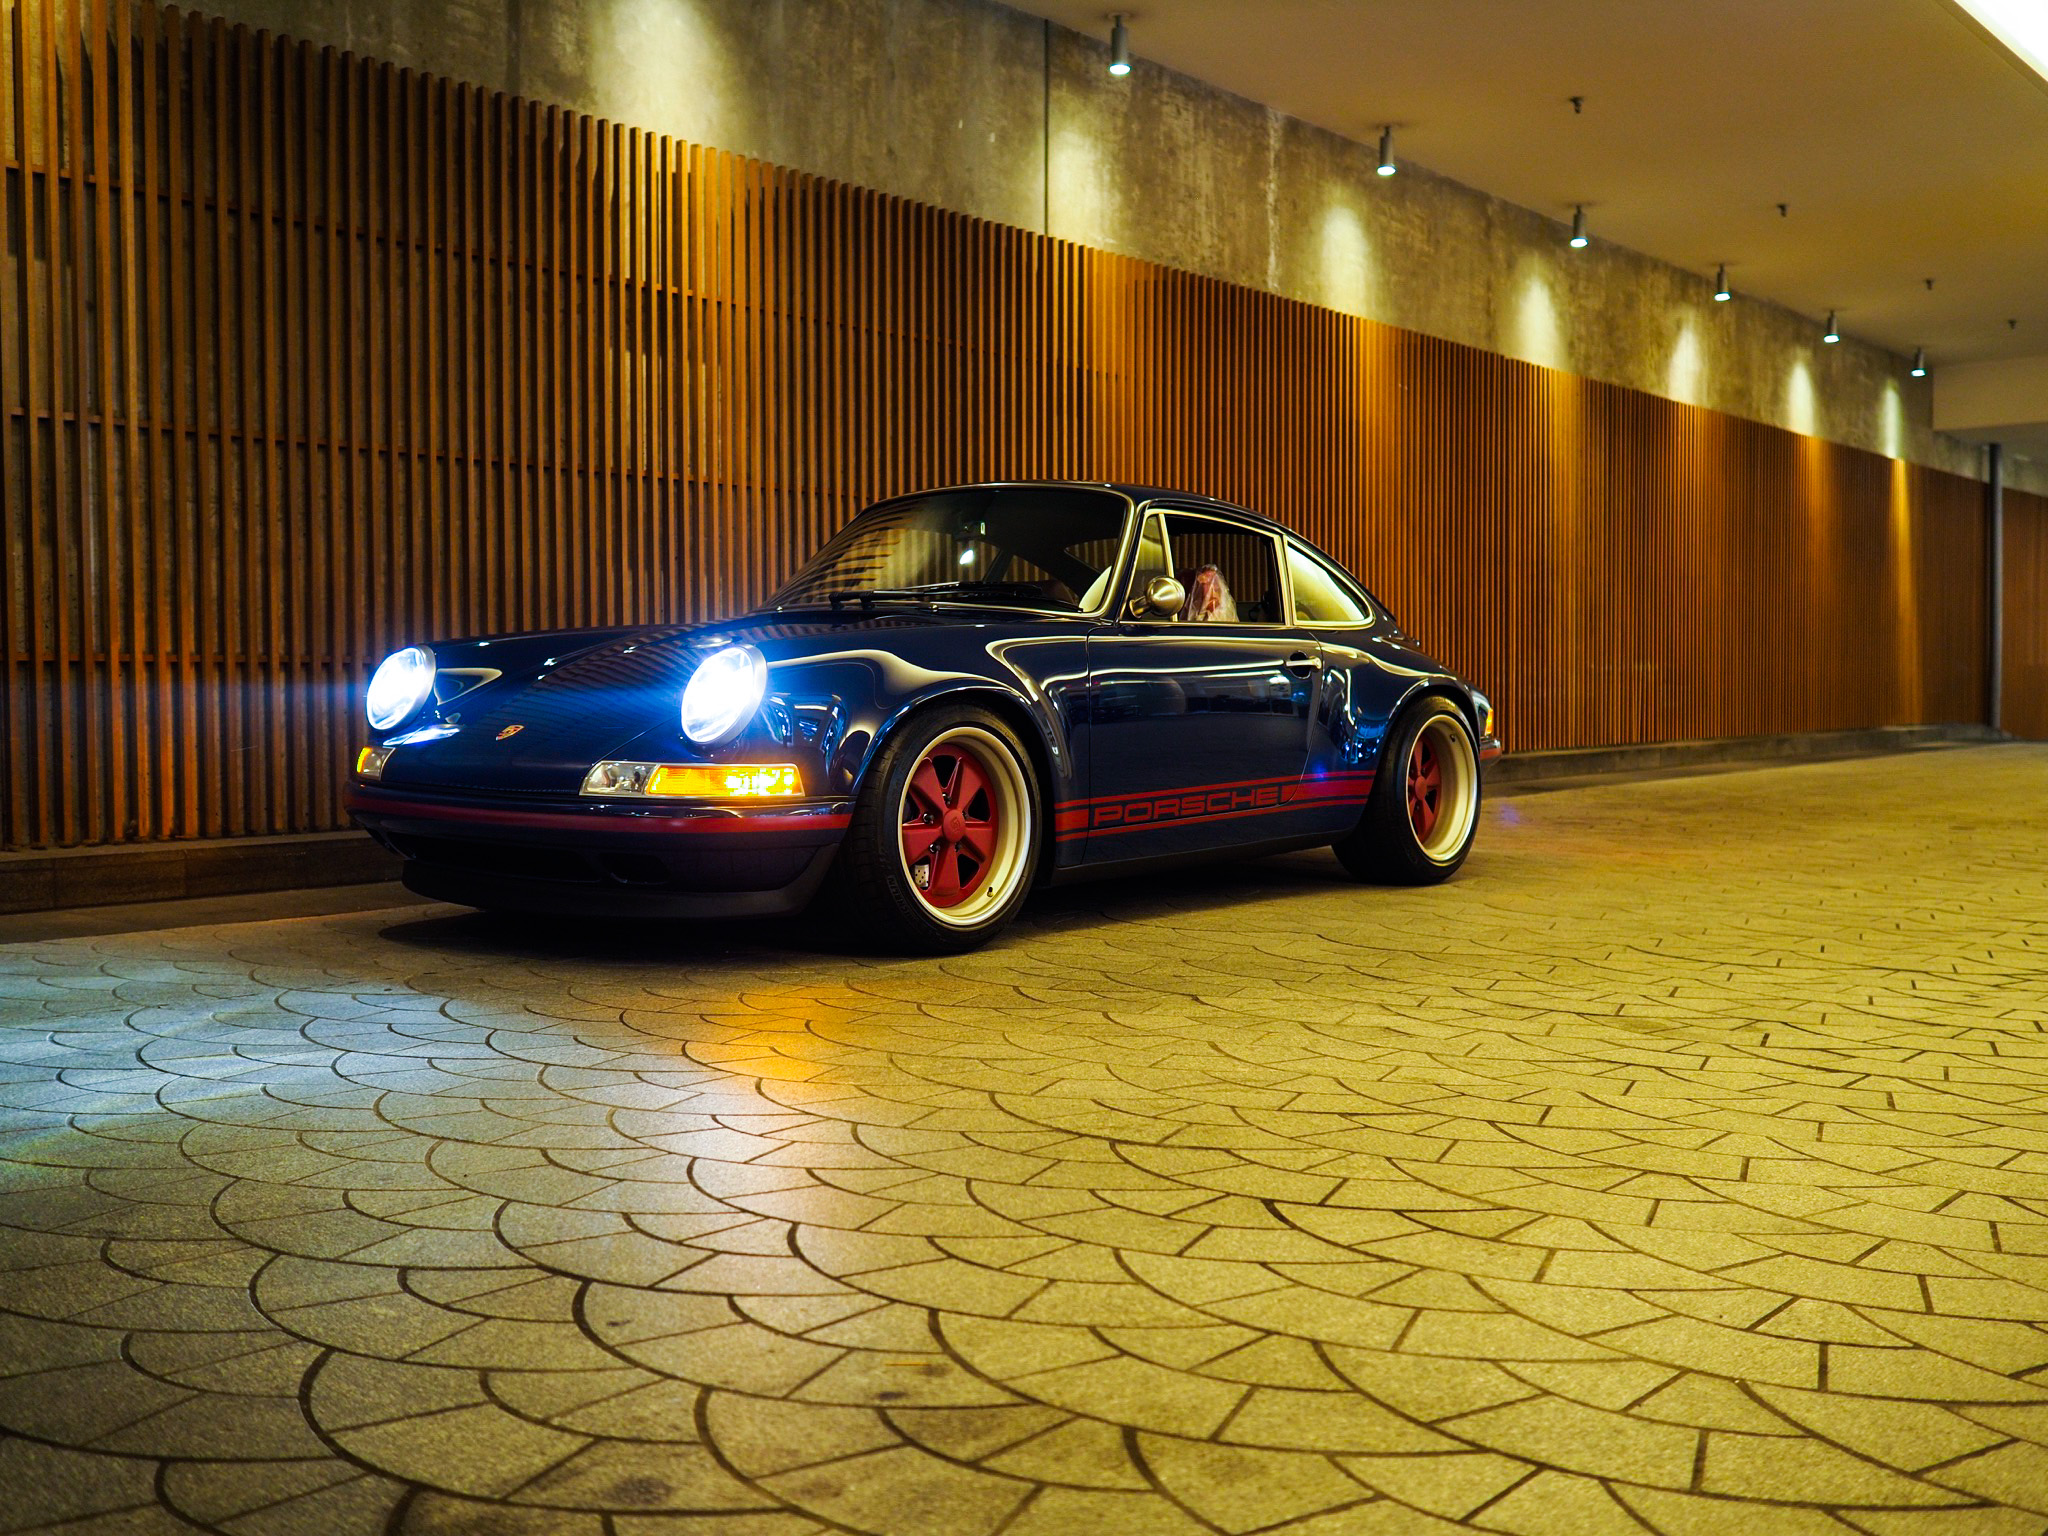 review porsche 911 restored by singer vehicle design pfaff auto. Black Bedroom Furniture Sets. Home Design Ideas